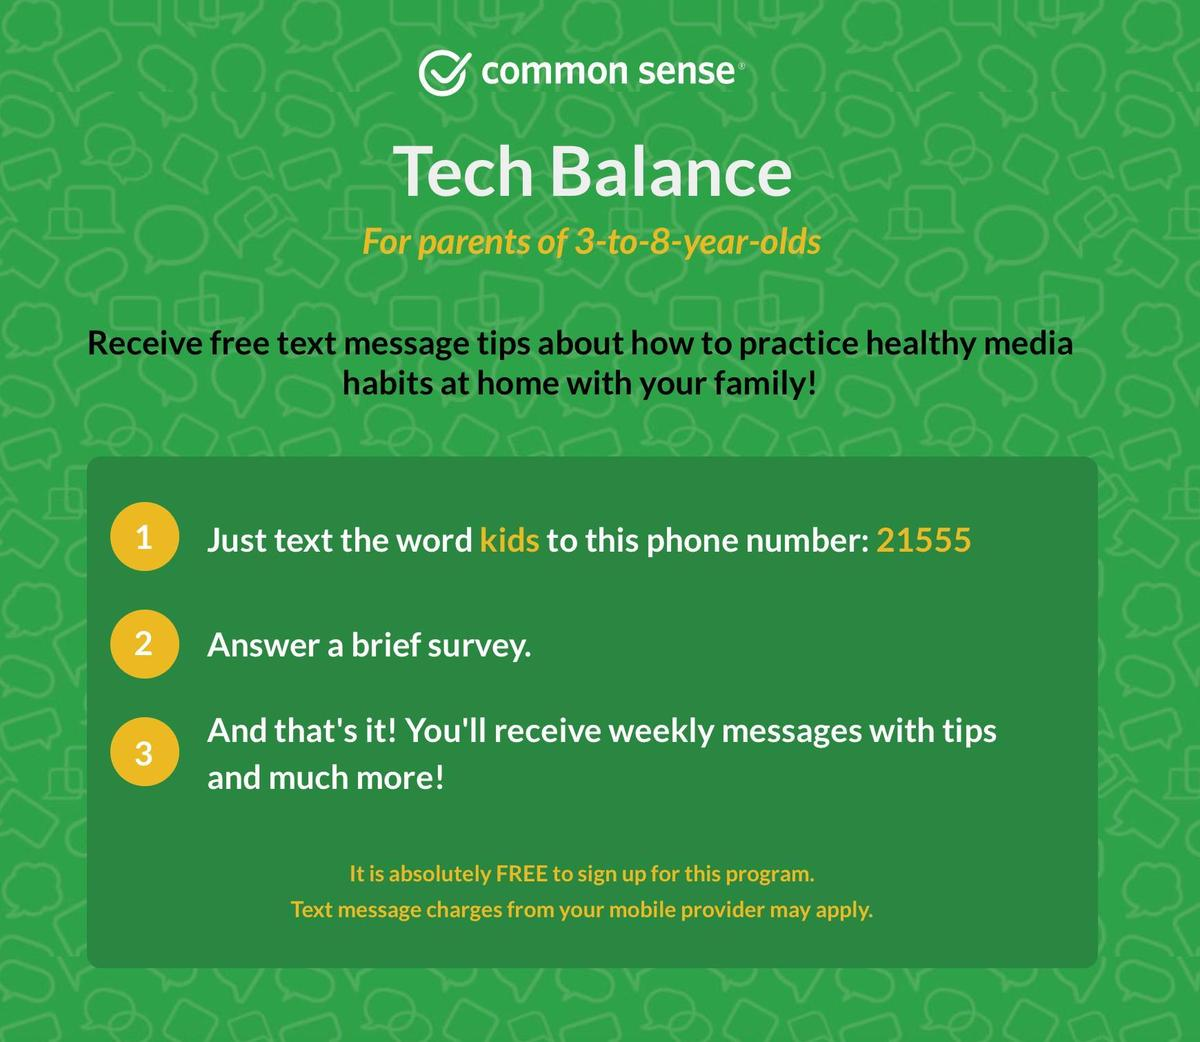 Families, you can receive free text message tips about how to practice healthy media habits at home with your family!